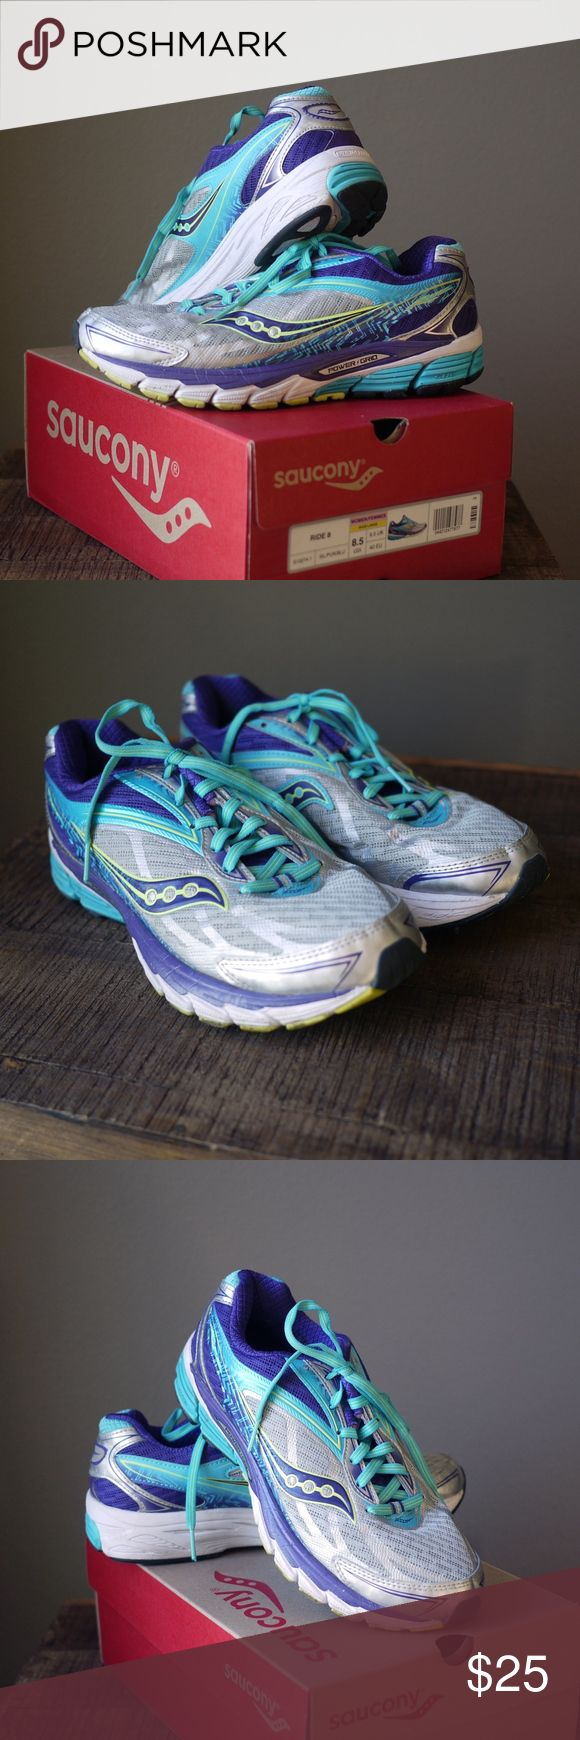 Saucony Ride 8 Shoes Saucony Ride 8 shoes used a few times. Mesh/synthetic, rubber sole, cushioned road running and training shoe, lace-up closure; women size: 8.5 Saucony Shoes Sneakers